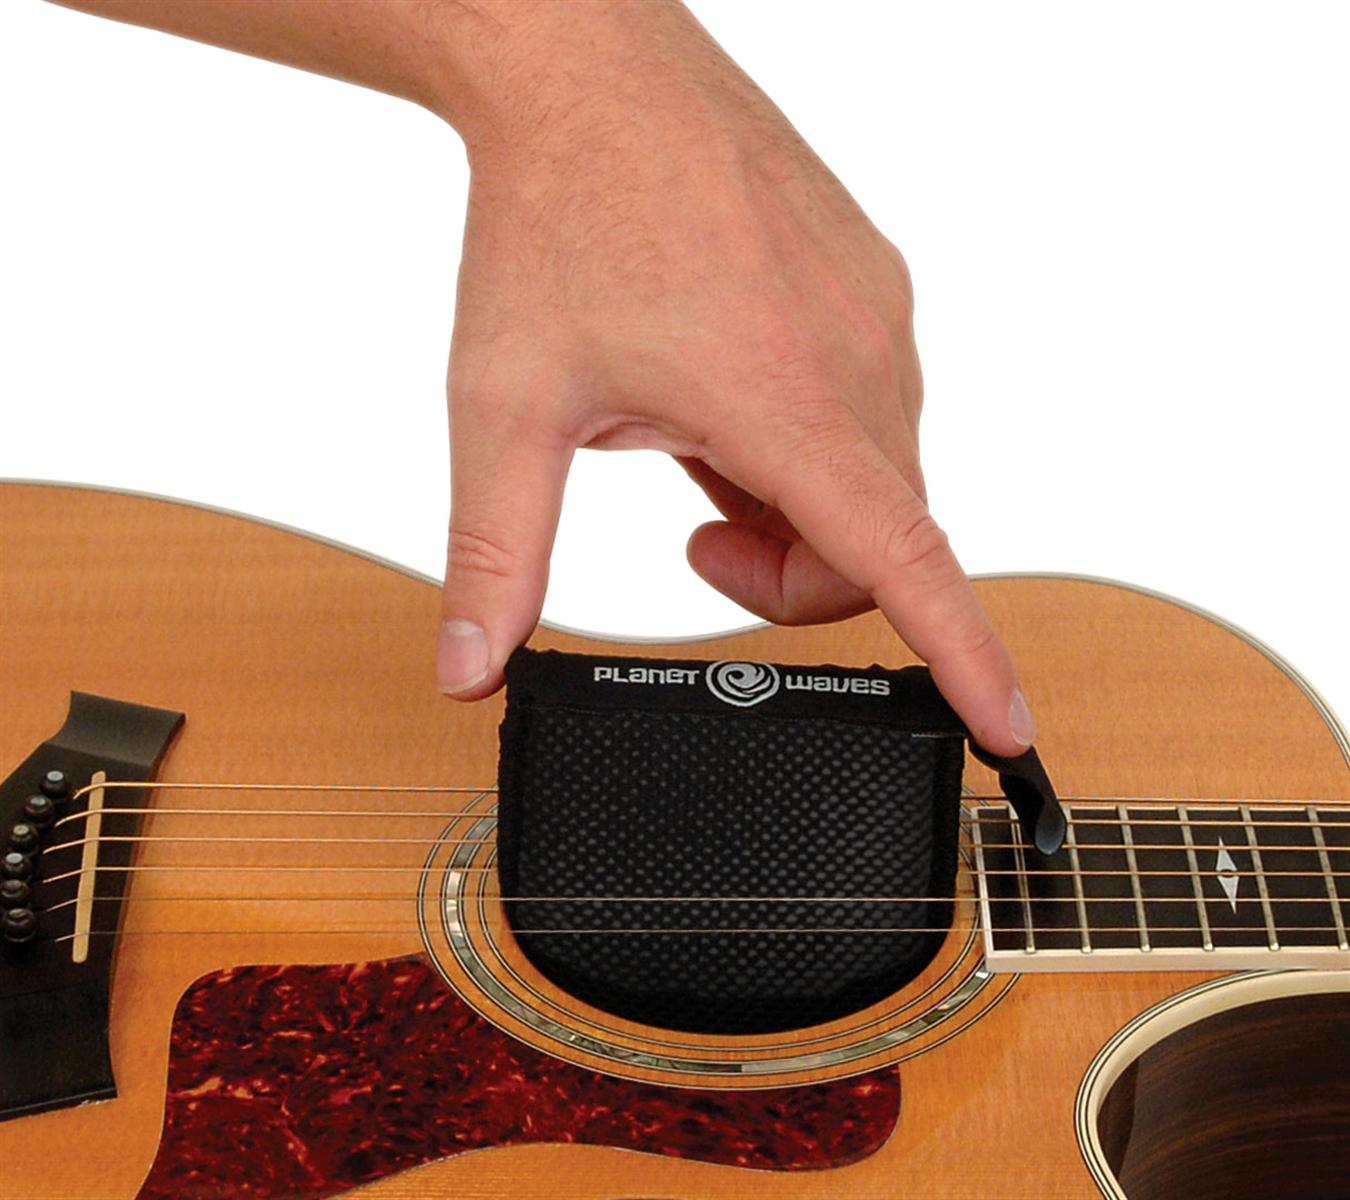 A person holding a Planet Waves Humidipak inside the soundhole of an acoustic guitar to maintain its humidity.